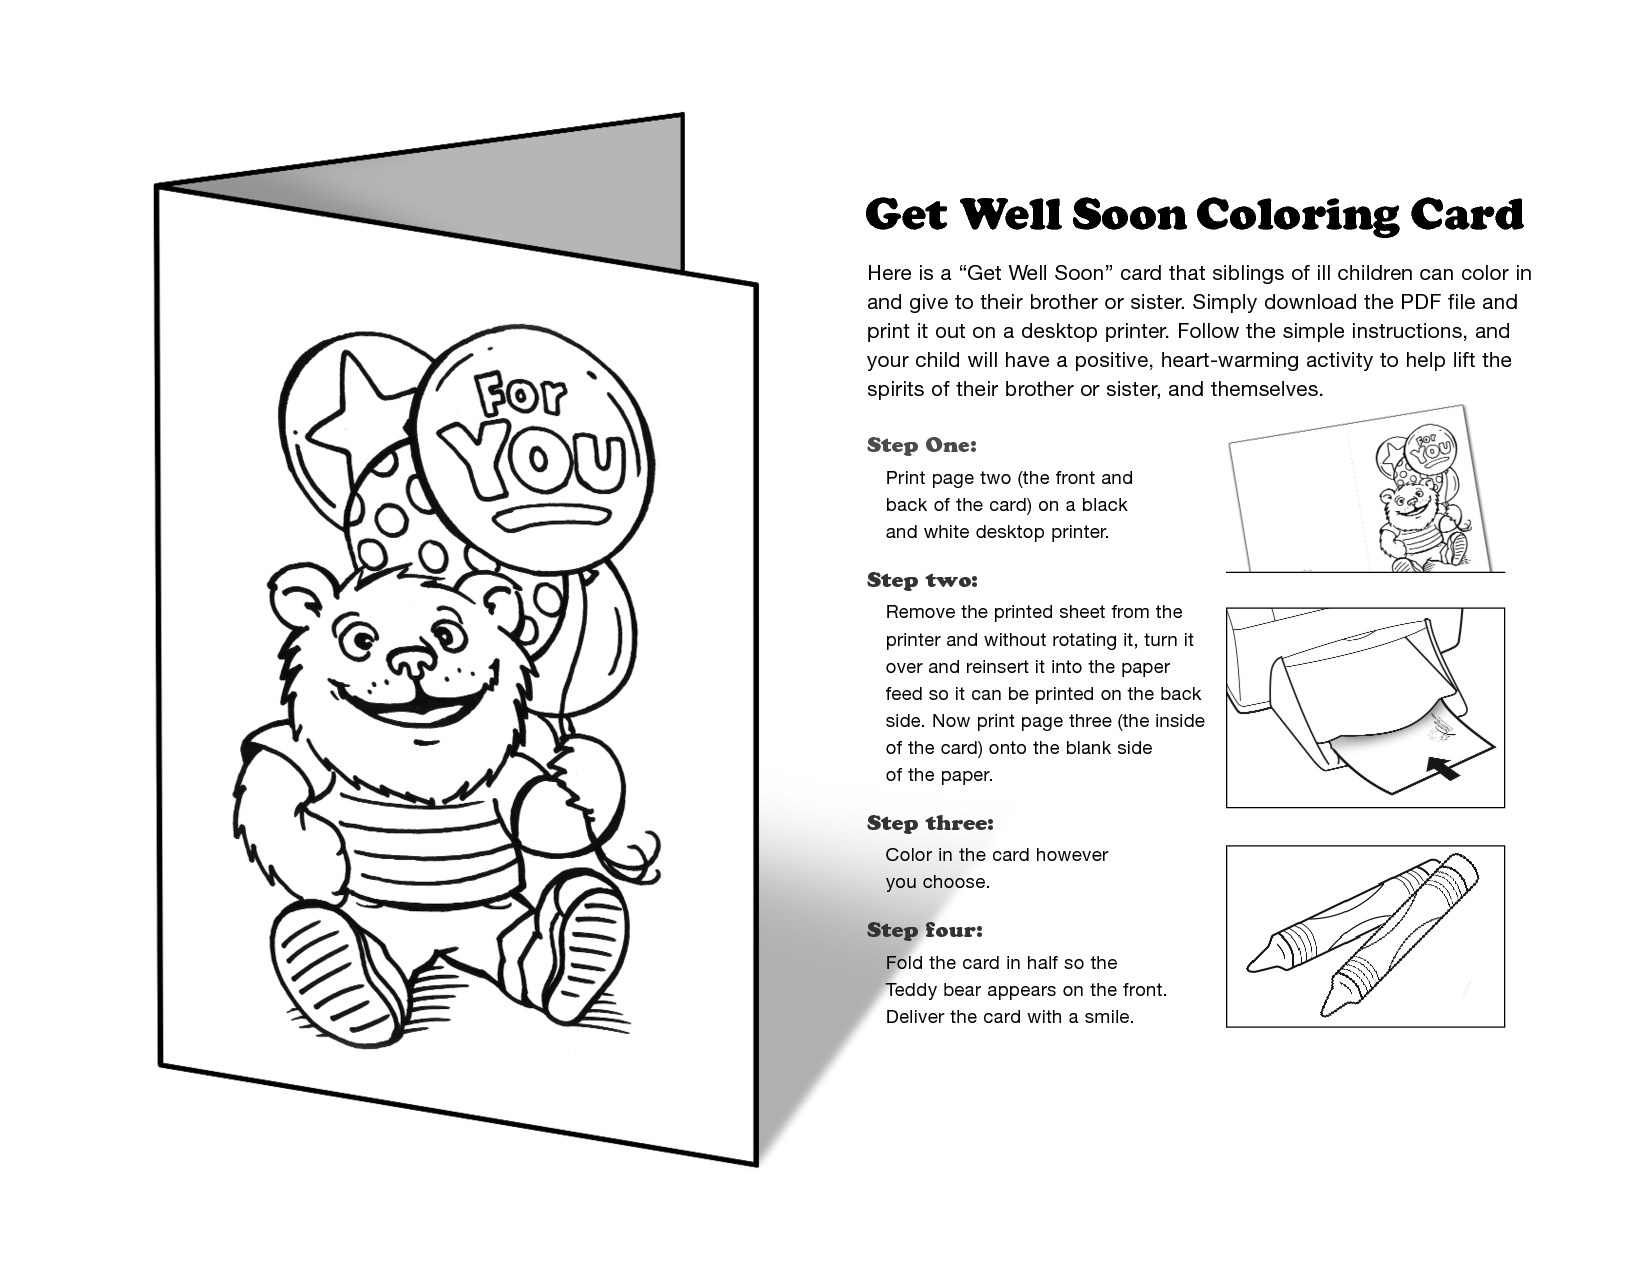 Free Printable Get Well Cards To Color - Printable Cards - Free Printable Get Well Cards